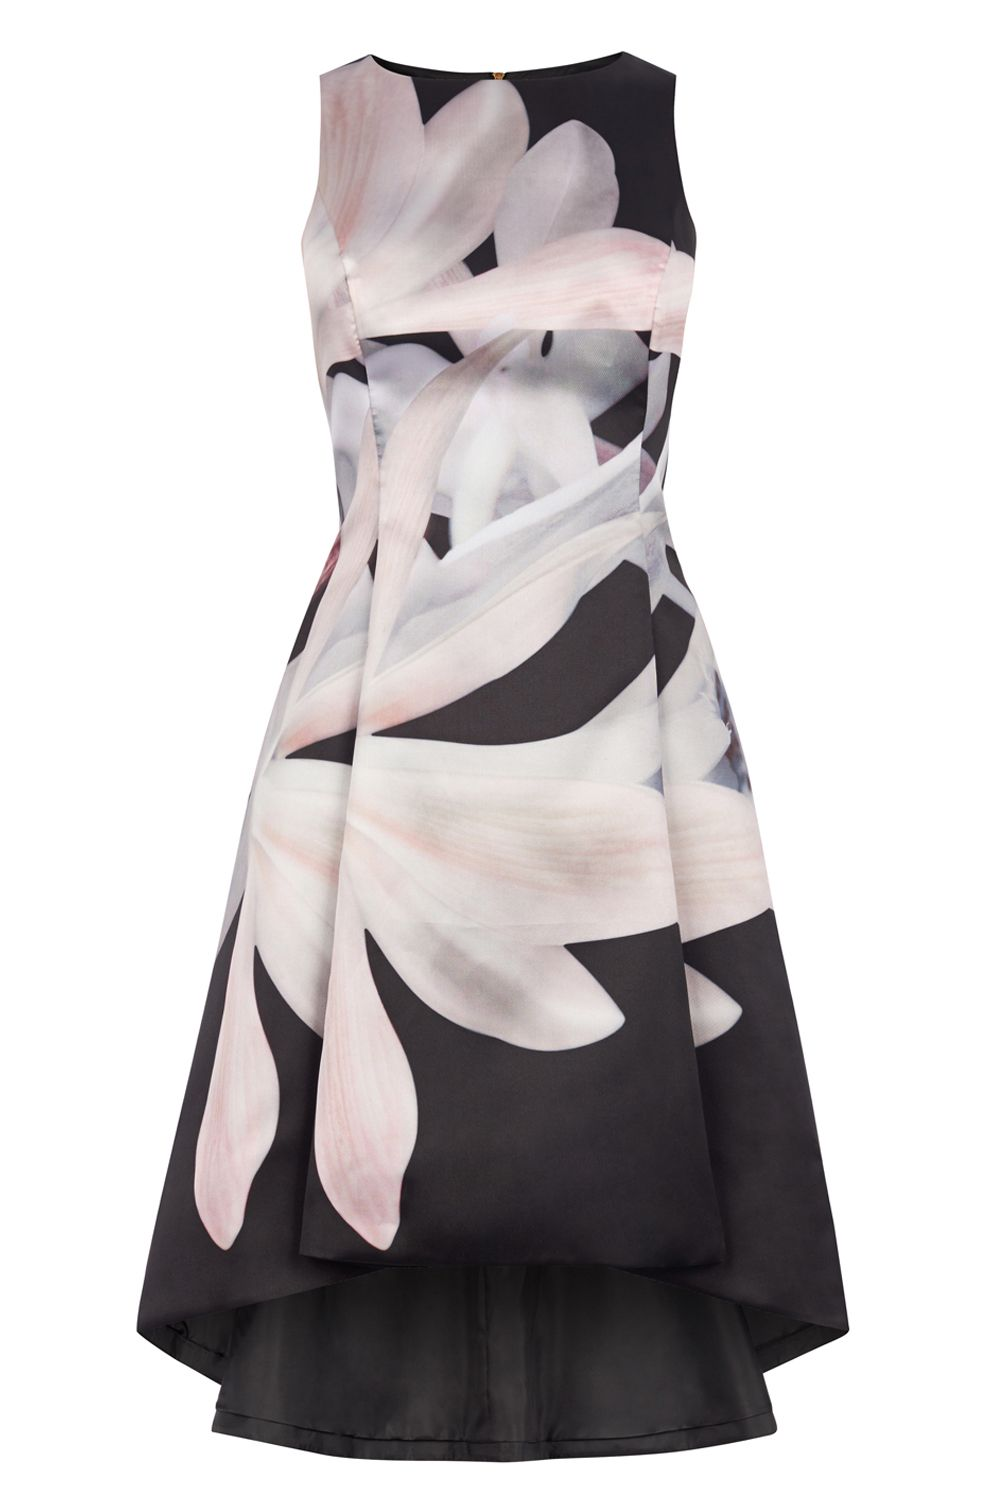 Coast Coast Rosaria Print Dress, Black/White